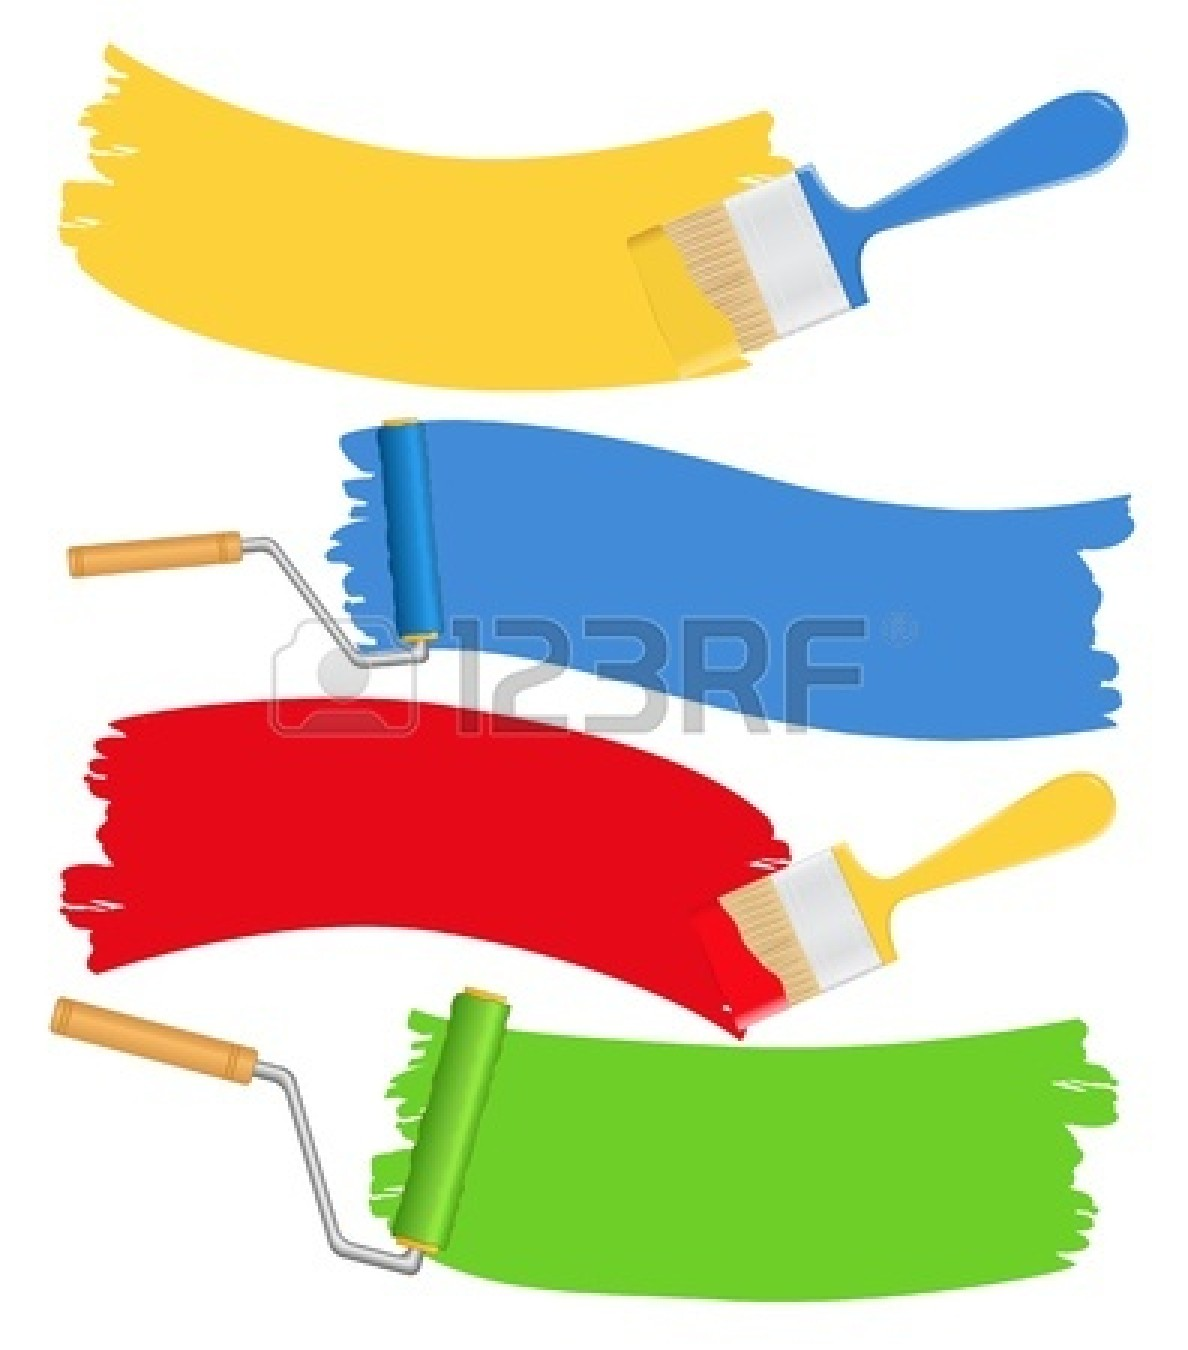 Paint stokes clipart picture free Paint Brush Stroke Clipart | Free download best Paint Brush Stroke ... picture free